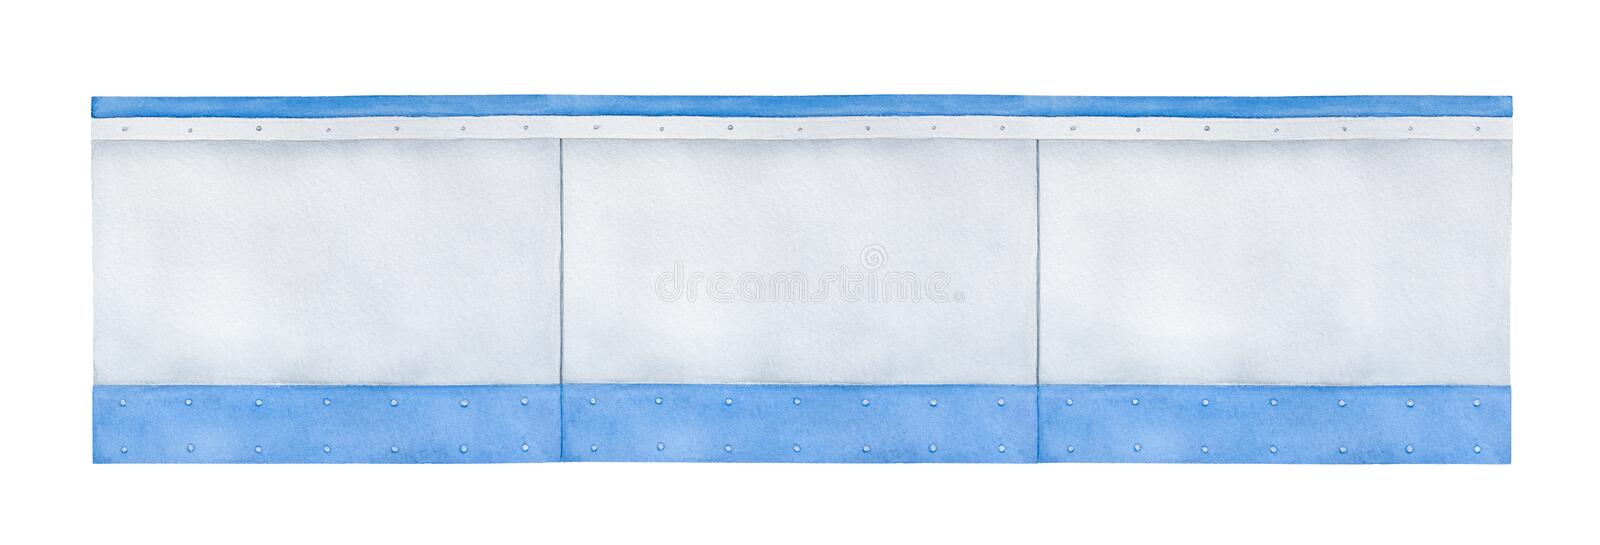 Drawing of blank arena boards. stock image